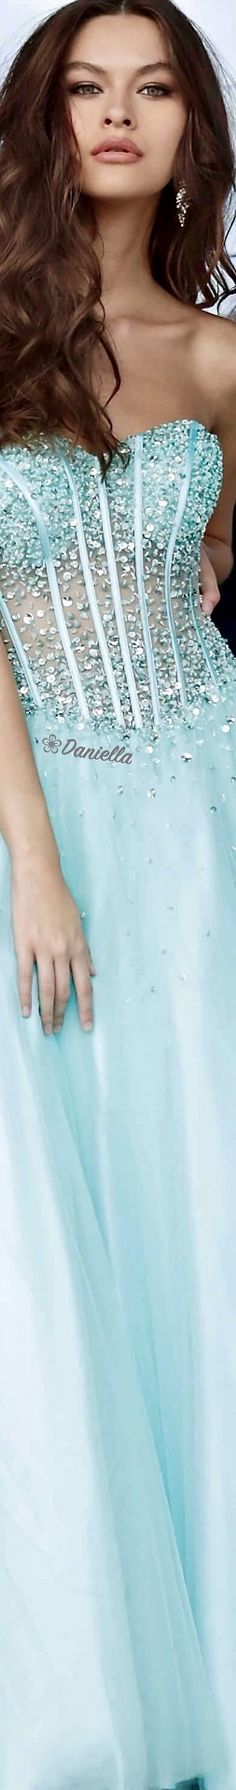 Buy Jovani designer prom, evening and wedding dresses via our authenticated retailer store. Unique Fashion, Womens Fashion, Fashion Design, Mint Color, Colour, Turquoise Fashion, Swimwear Fashion, Amazing Women, Outfit Of The Day